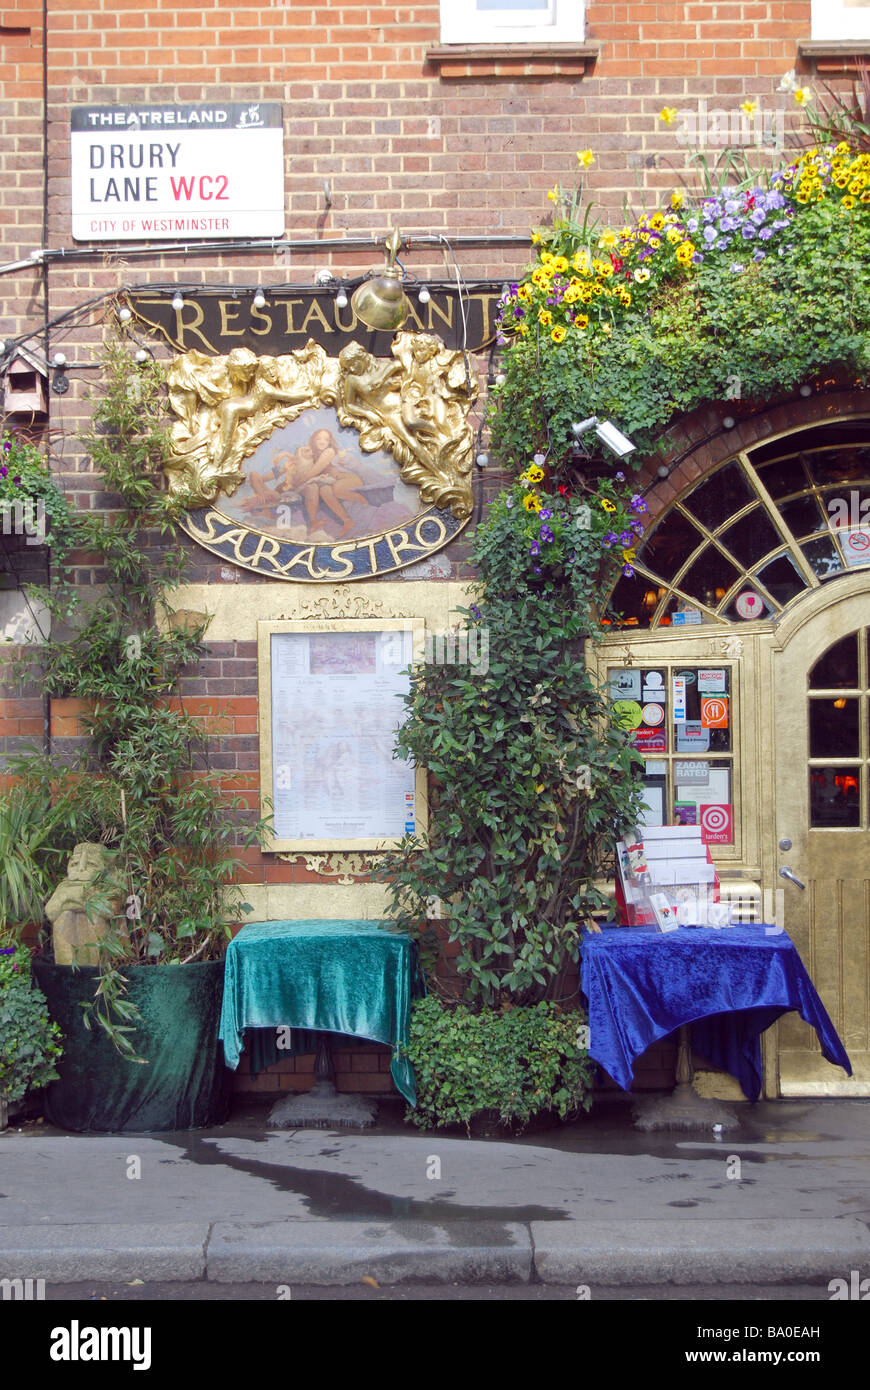 Sarastro restaurant Drury Lane London Theatreland - Stock Image